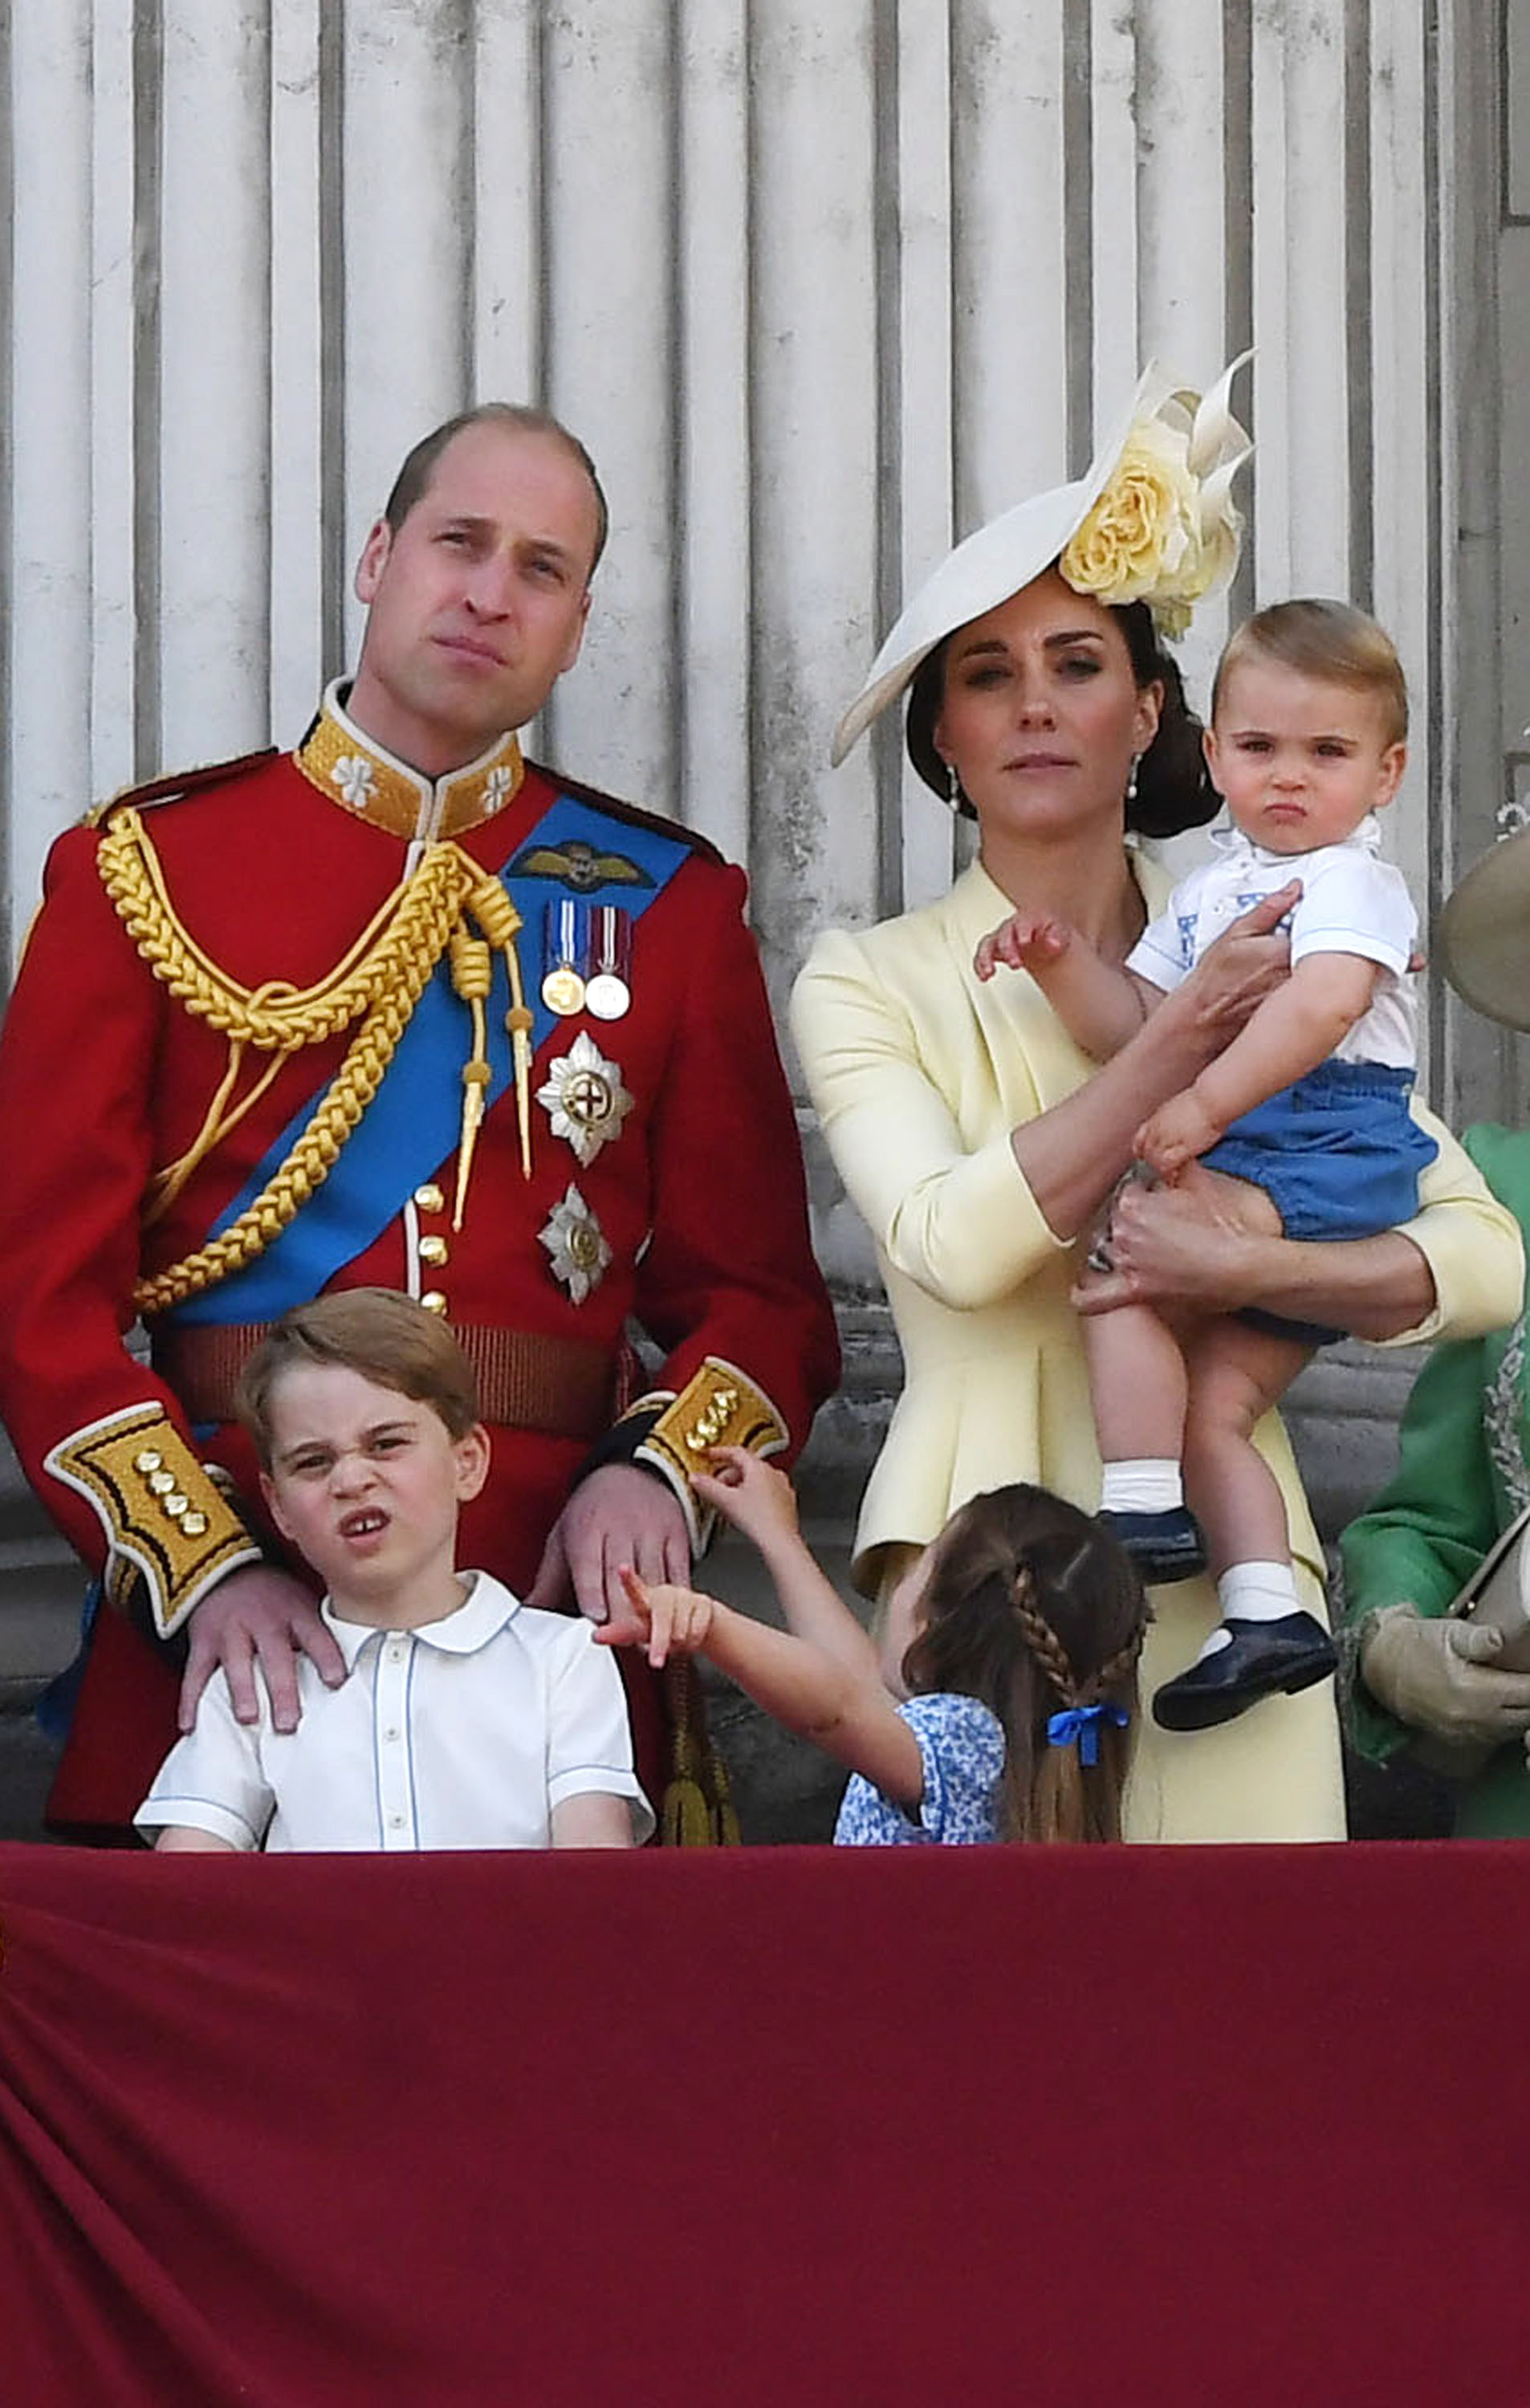 (L-R) Britain's Prince George, his father Prince William, Princess Charlotte, Catherine, Duchess of Cambridge and Prince Louis stand on a balcony of Buckingham Palace to watch a fly-past during the Trooping of the Colour Queen's birthday parade, in central London, Britain, 08 June 2019. The annual official Queen's birthday parade is more popularly known as Trooping the Colour when the Queen's colour is 'trooped' in front of Her Majesty and all the Royal Colonels.Trooping the Colour Queen's birthday parade in London, United Kingdom - 08 Jun 2019